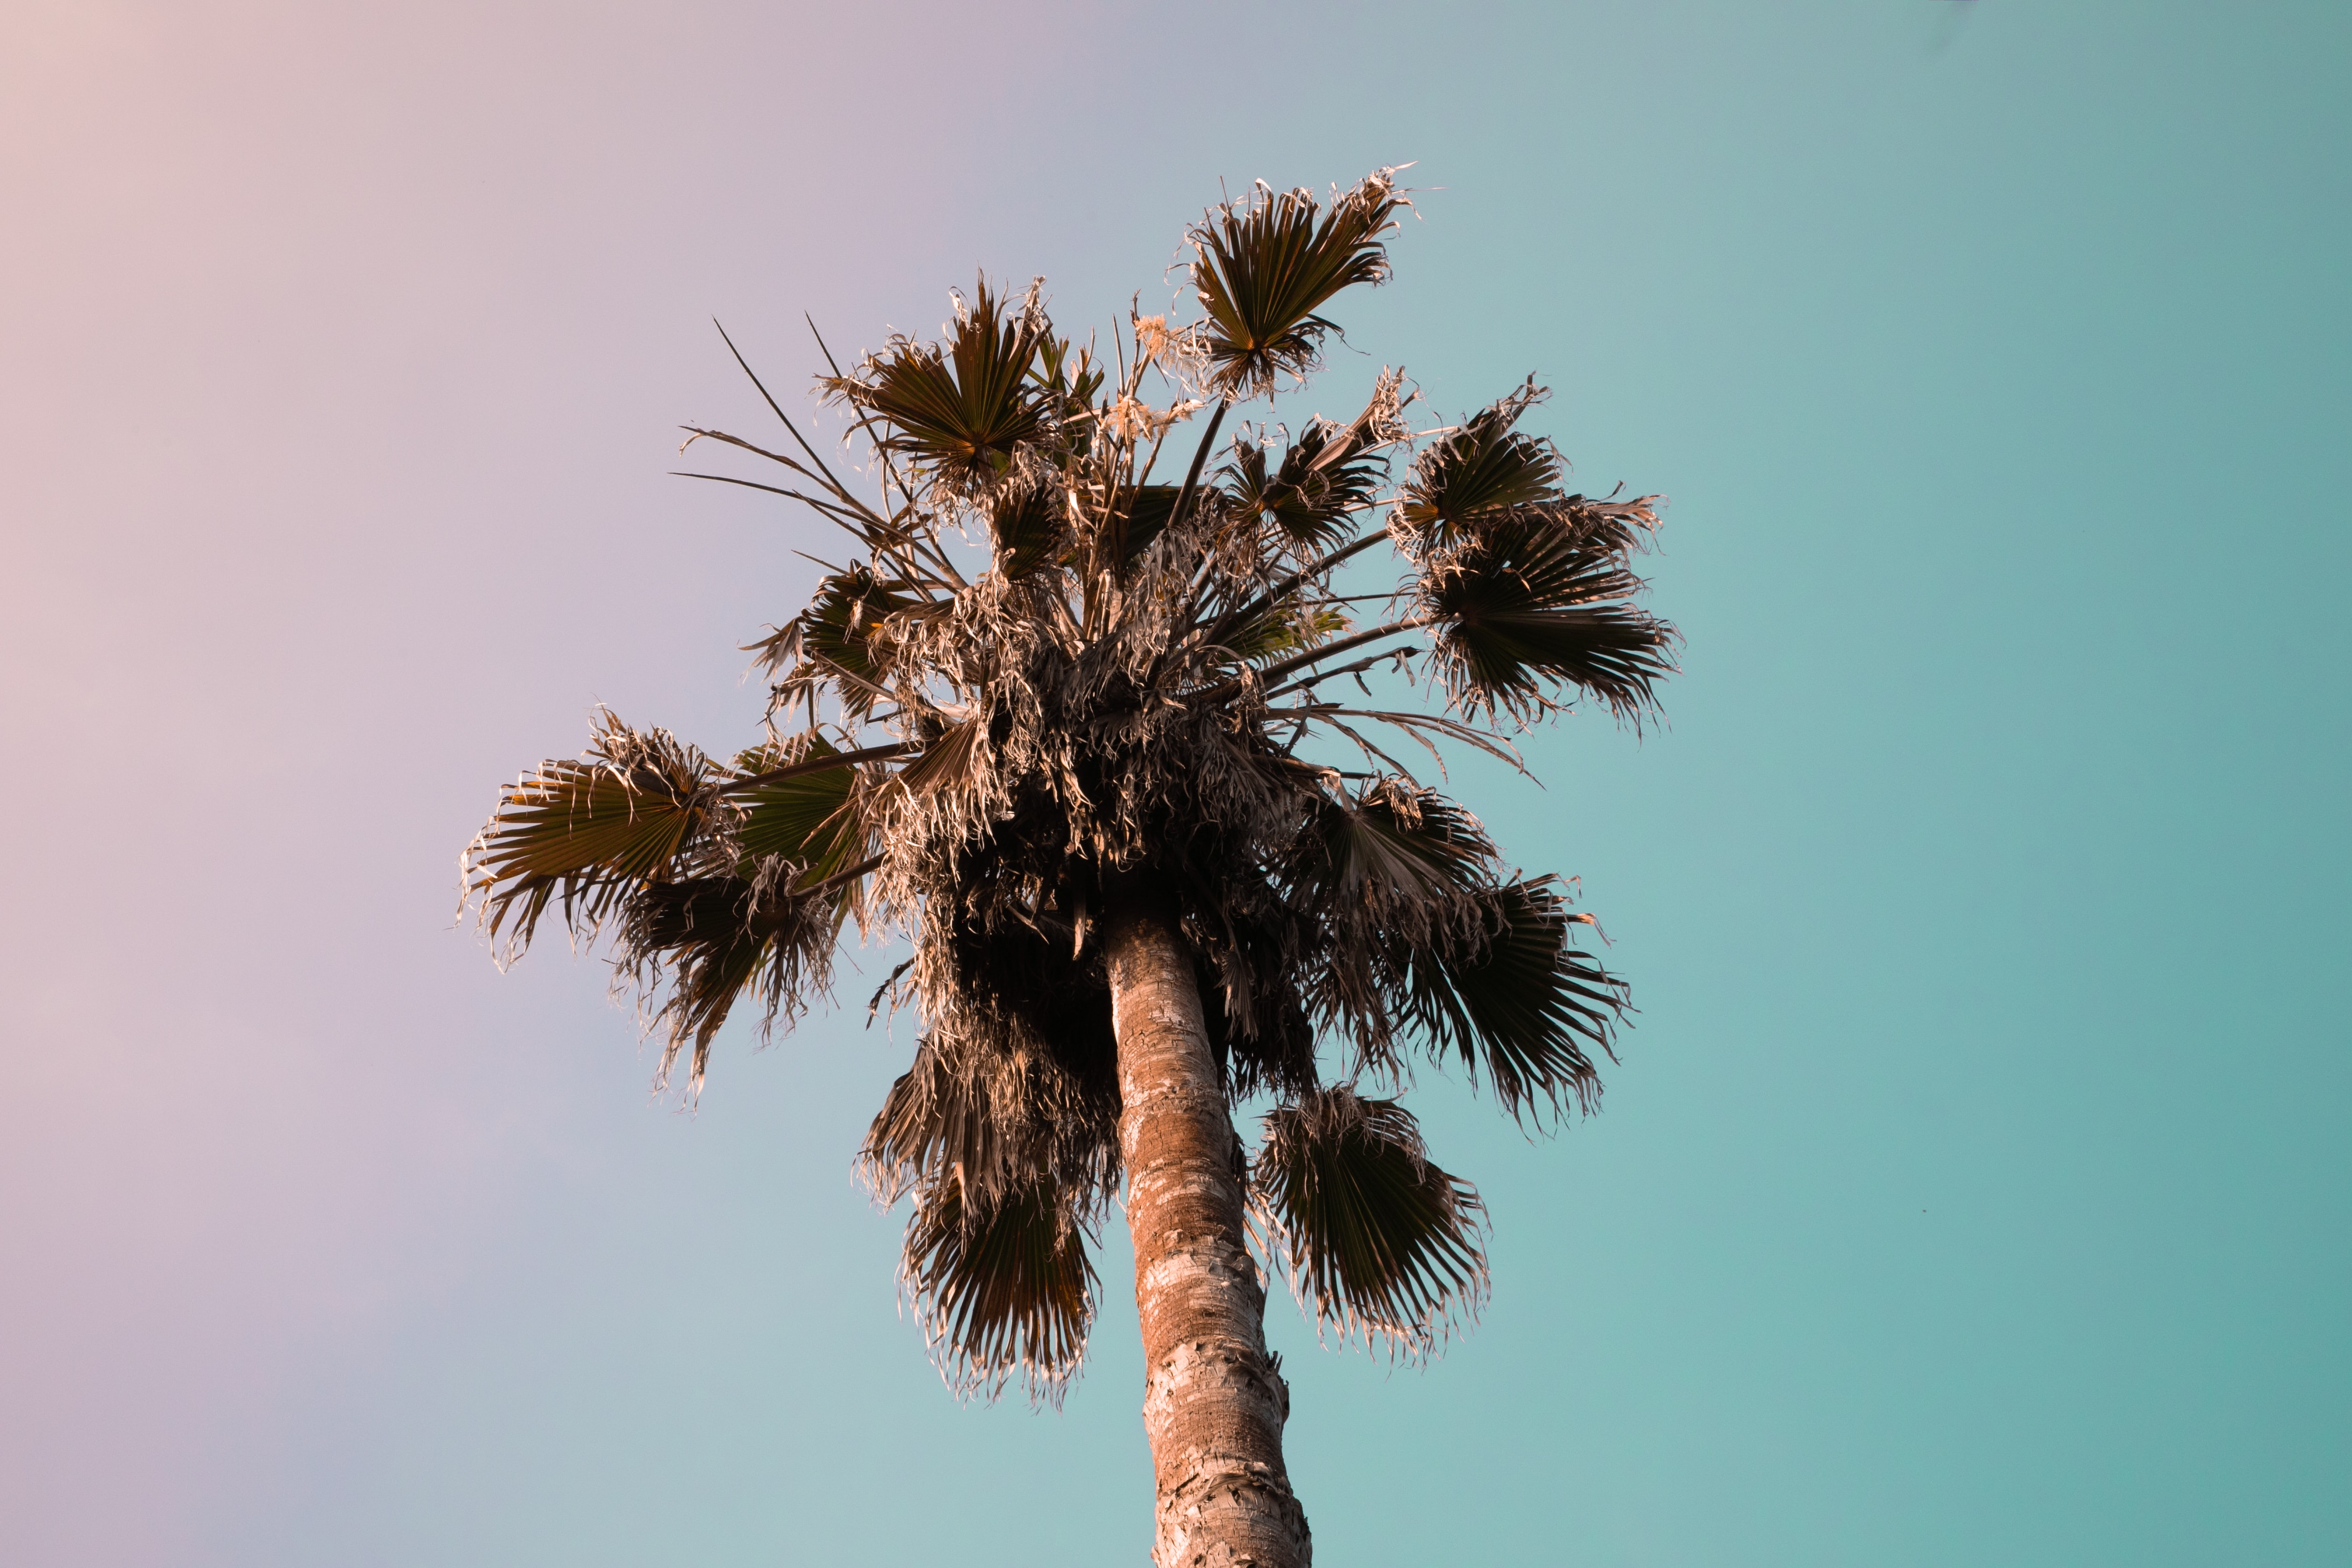 low-angle photography of palm plant